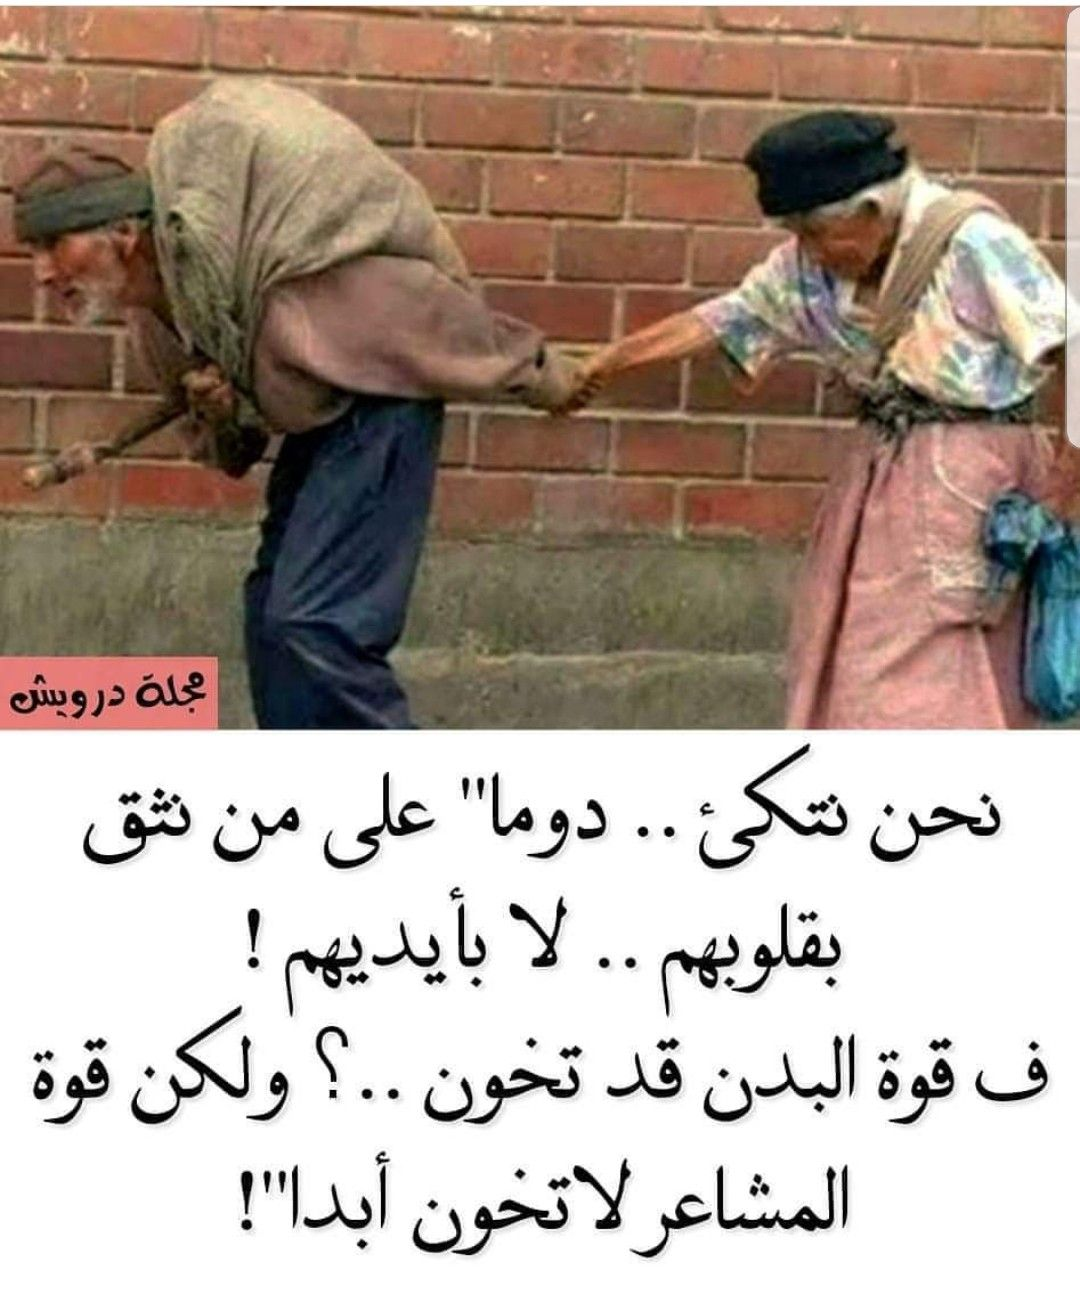 Pin By Alaa Butmah On الحكمة Arabic Words Arabic Love Quotes Funny Pictures